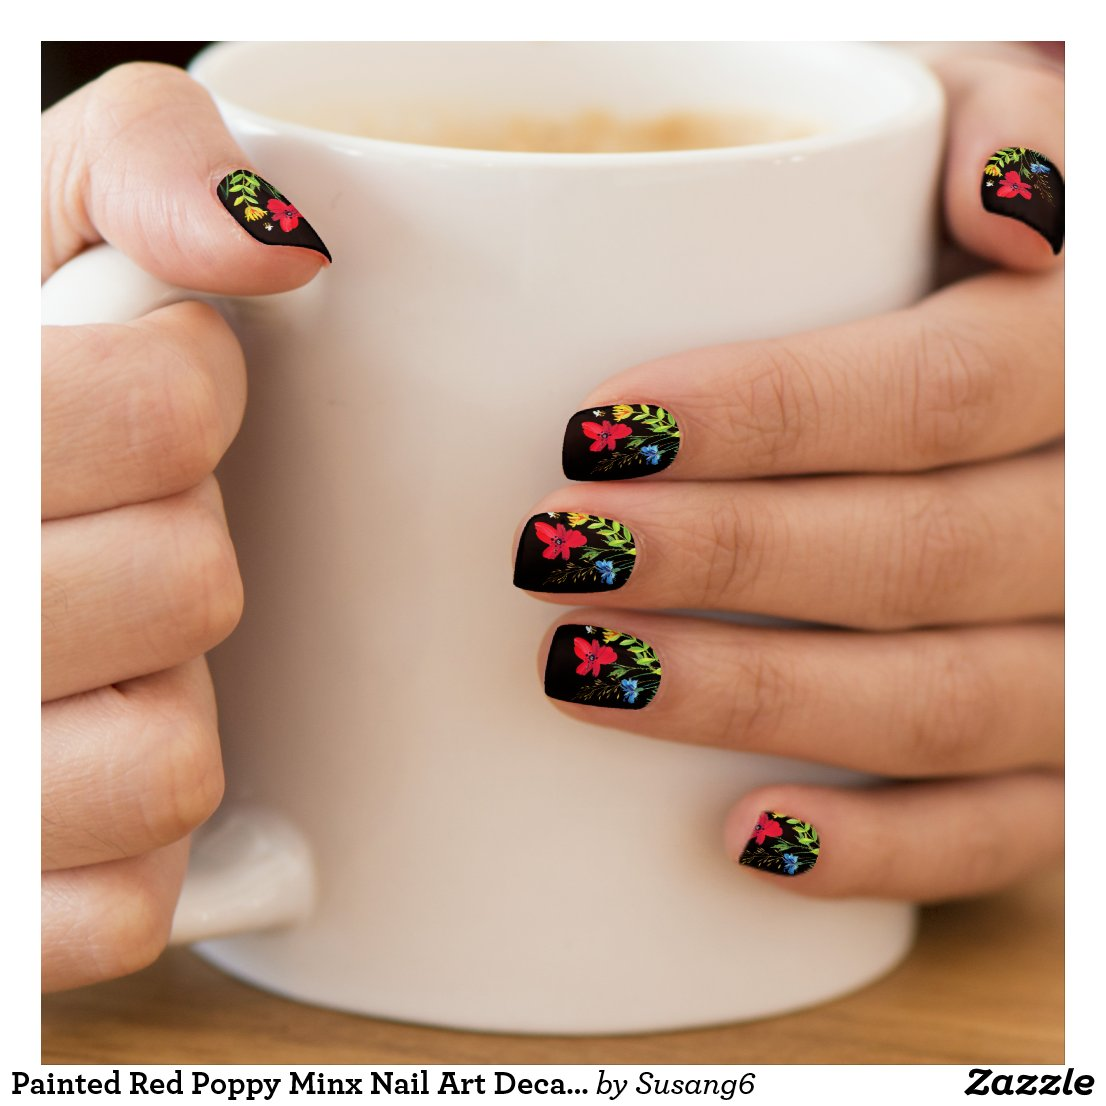 Painted Red Poppy Minx Nail Art Decals